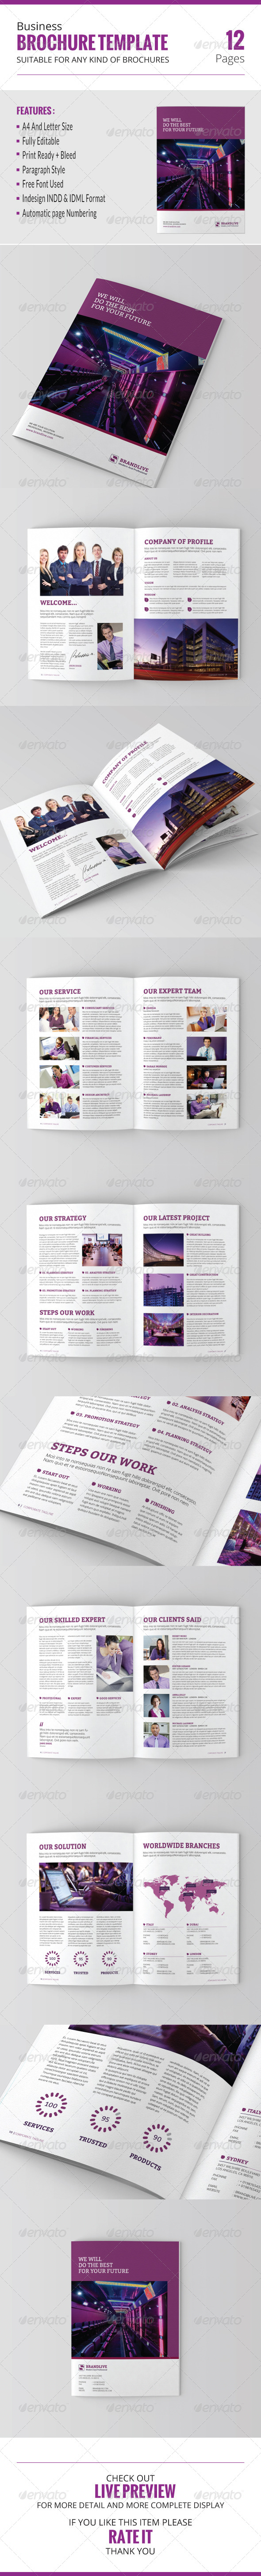 Business Brochure Template - Corporate Brochures